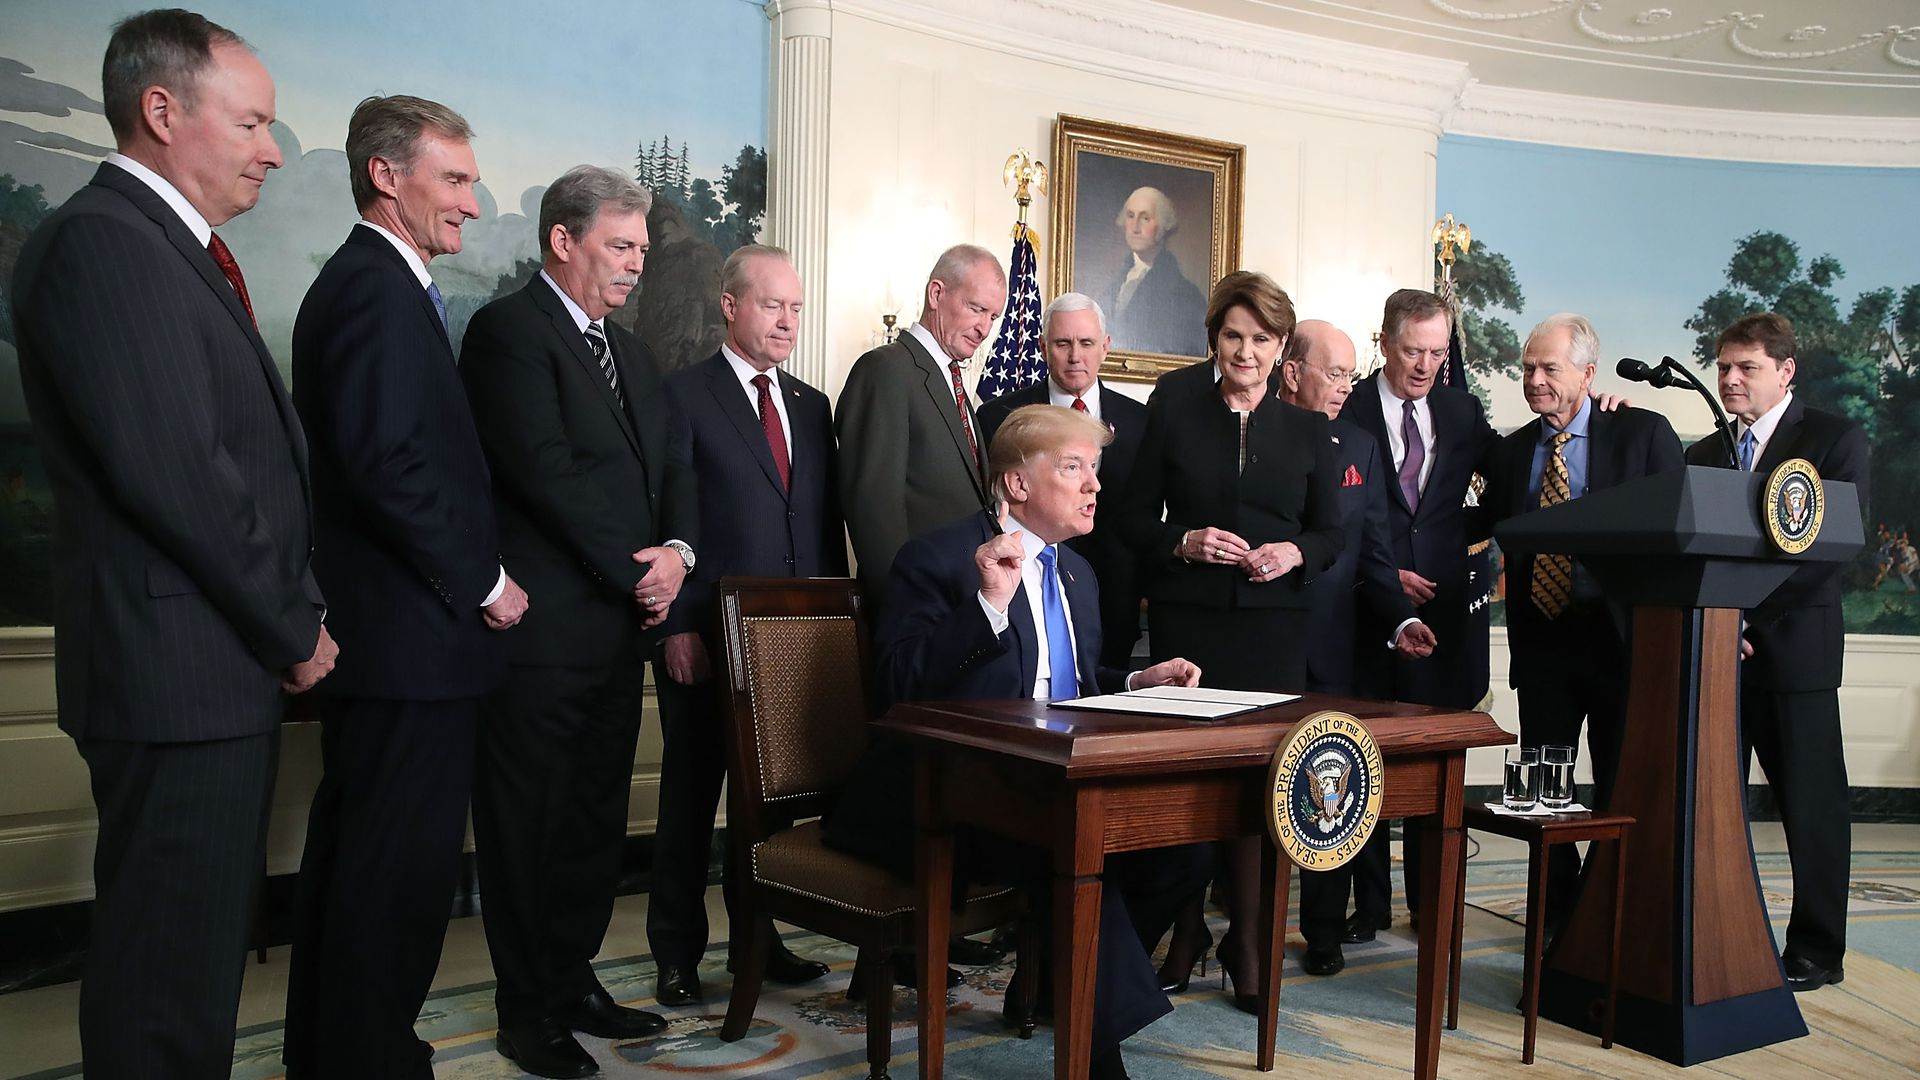 President Trump flanked by members of the business community as he signs a memorandum aimed at what he calls Chinese economic aggression in the Roosevelt Room at the White House on March 22, 2018.